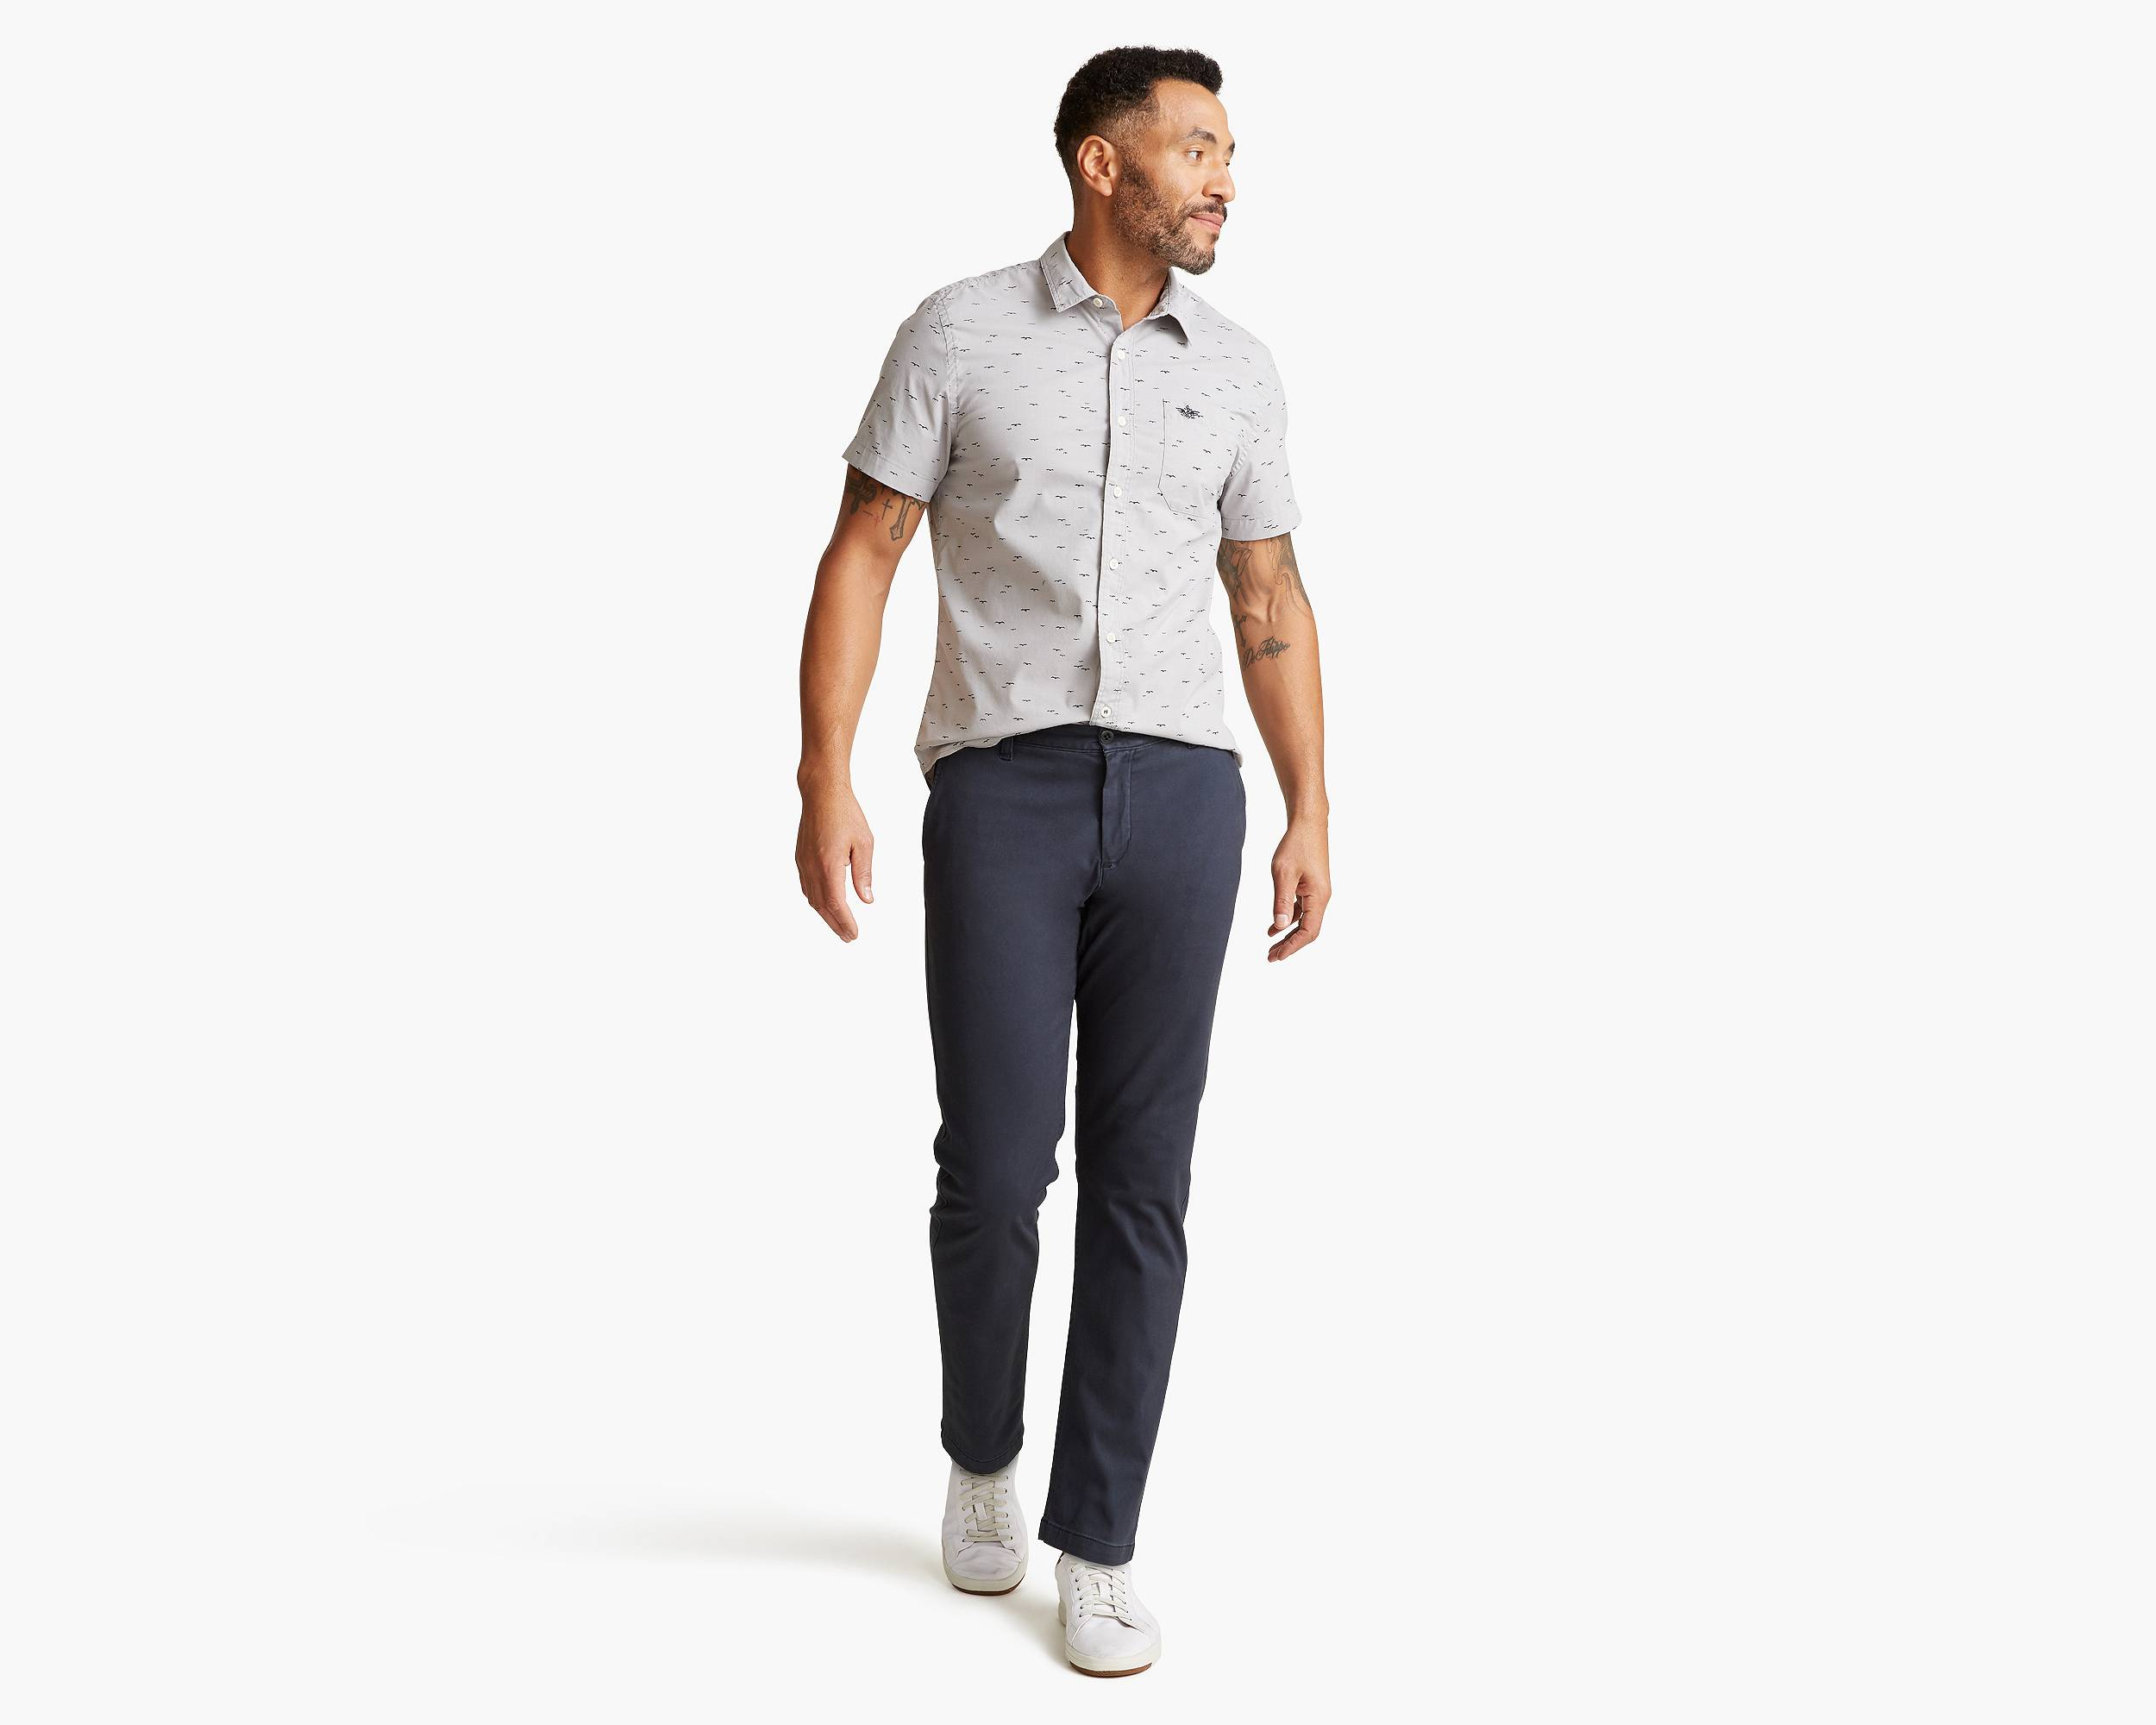 Washed Khaki Pants, Athletic Fit by Dockers